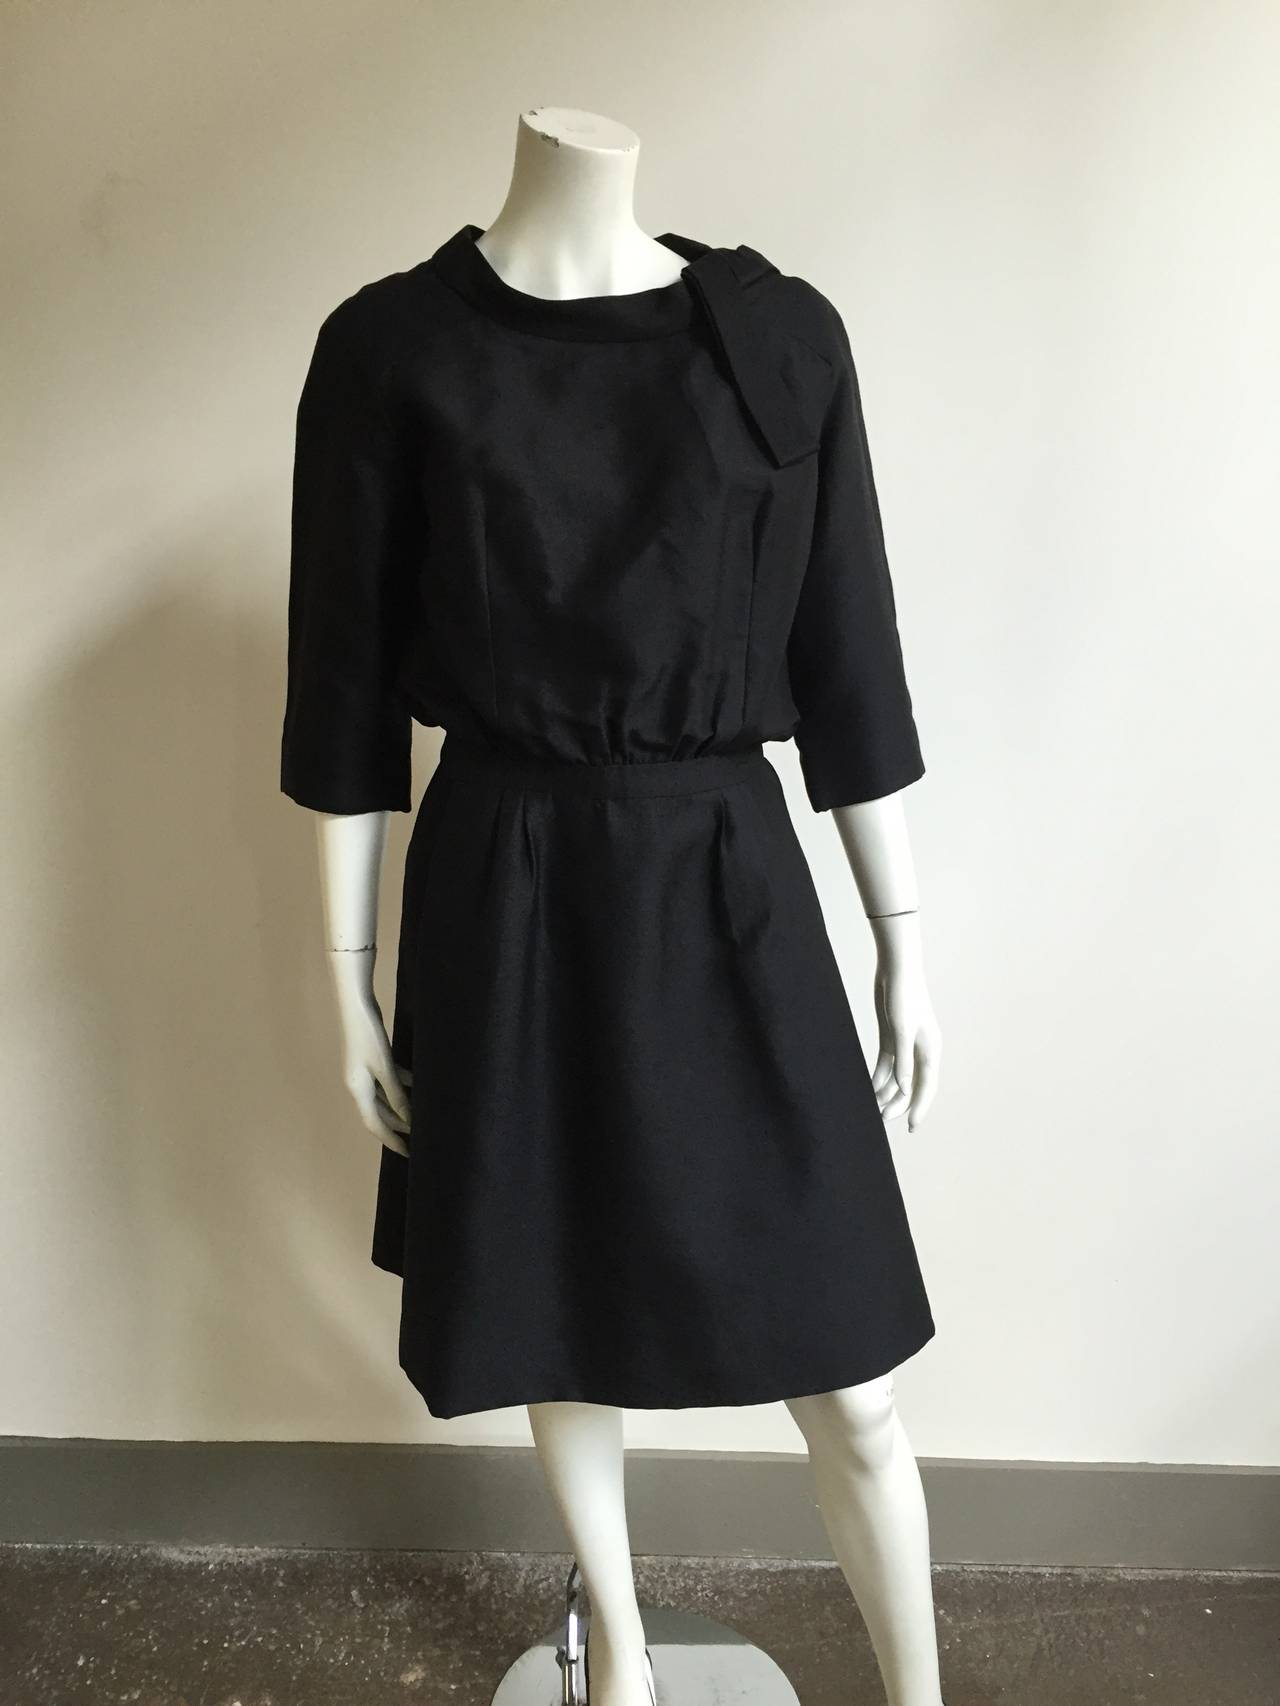 Dior 1950s Black Silk Evening Dress With Pockets Size 6. 10